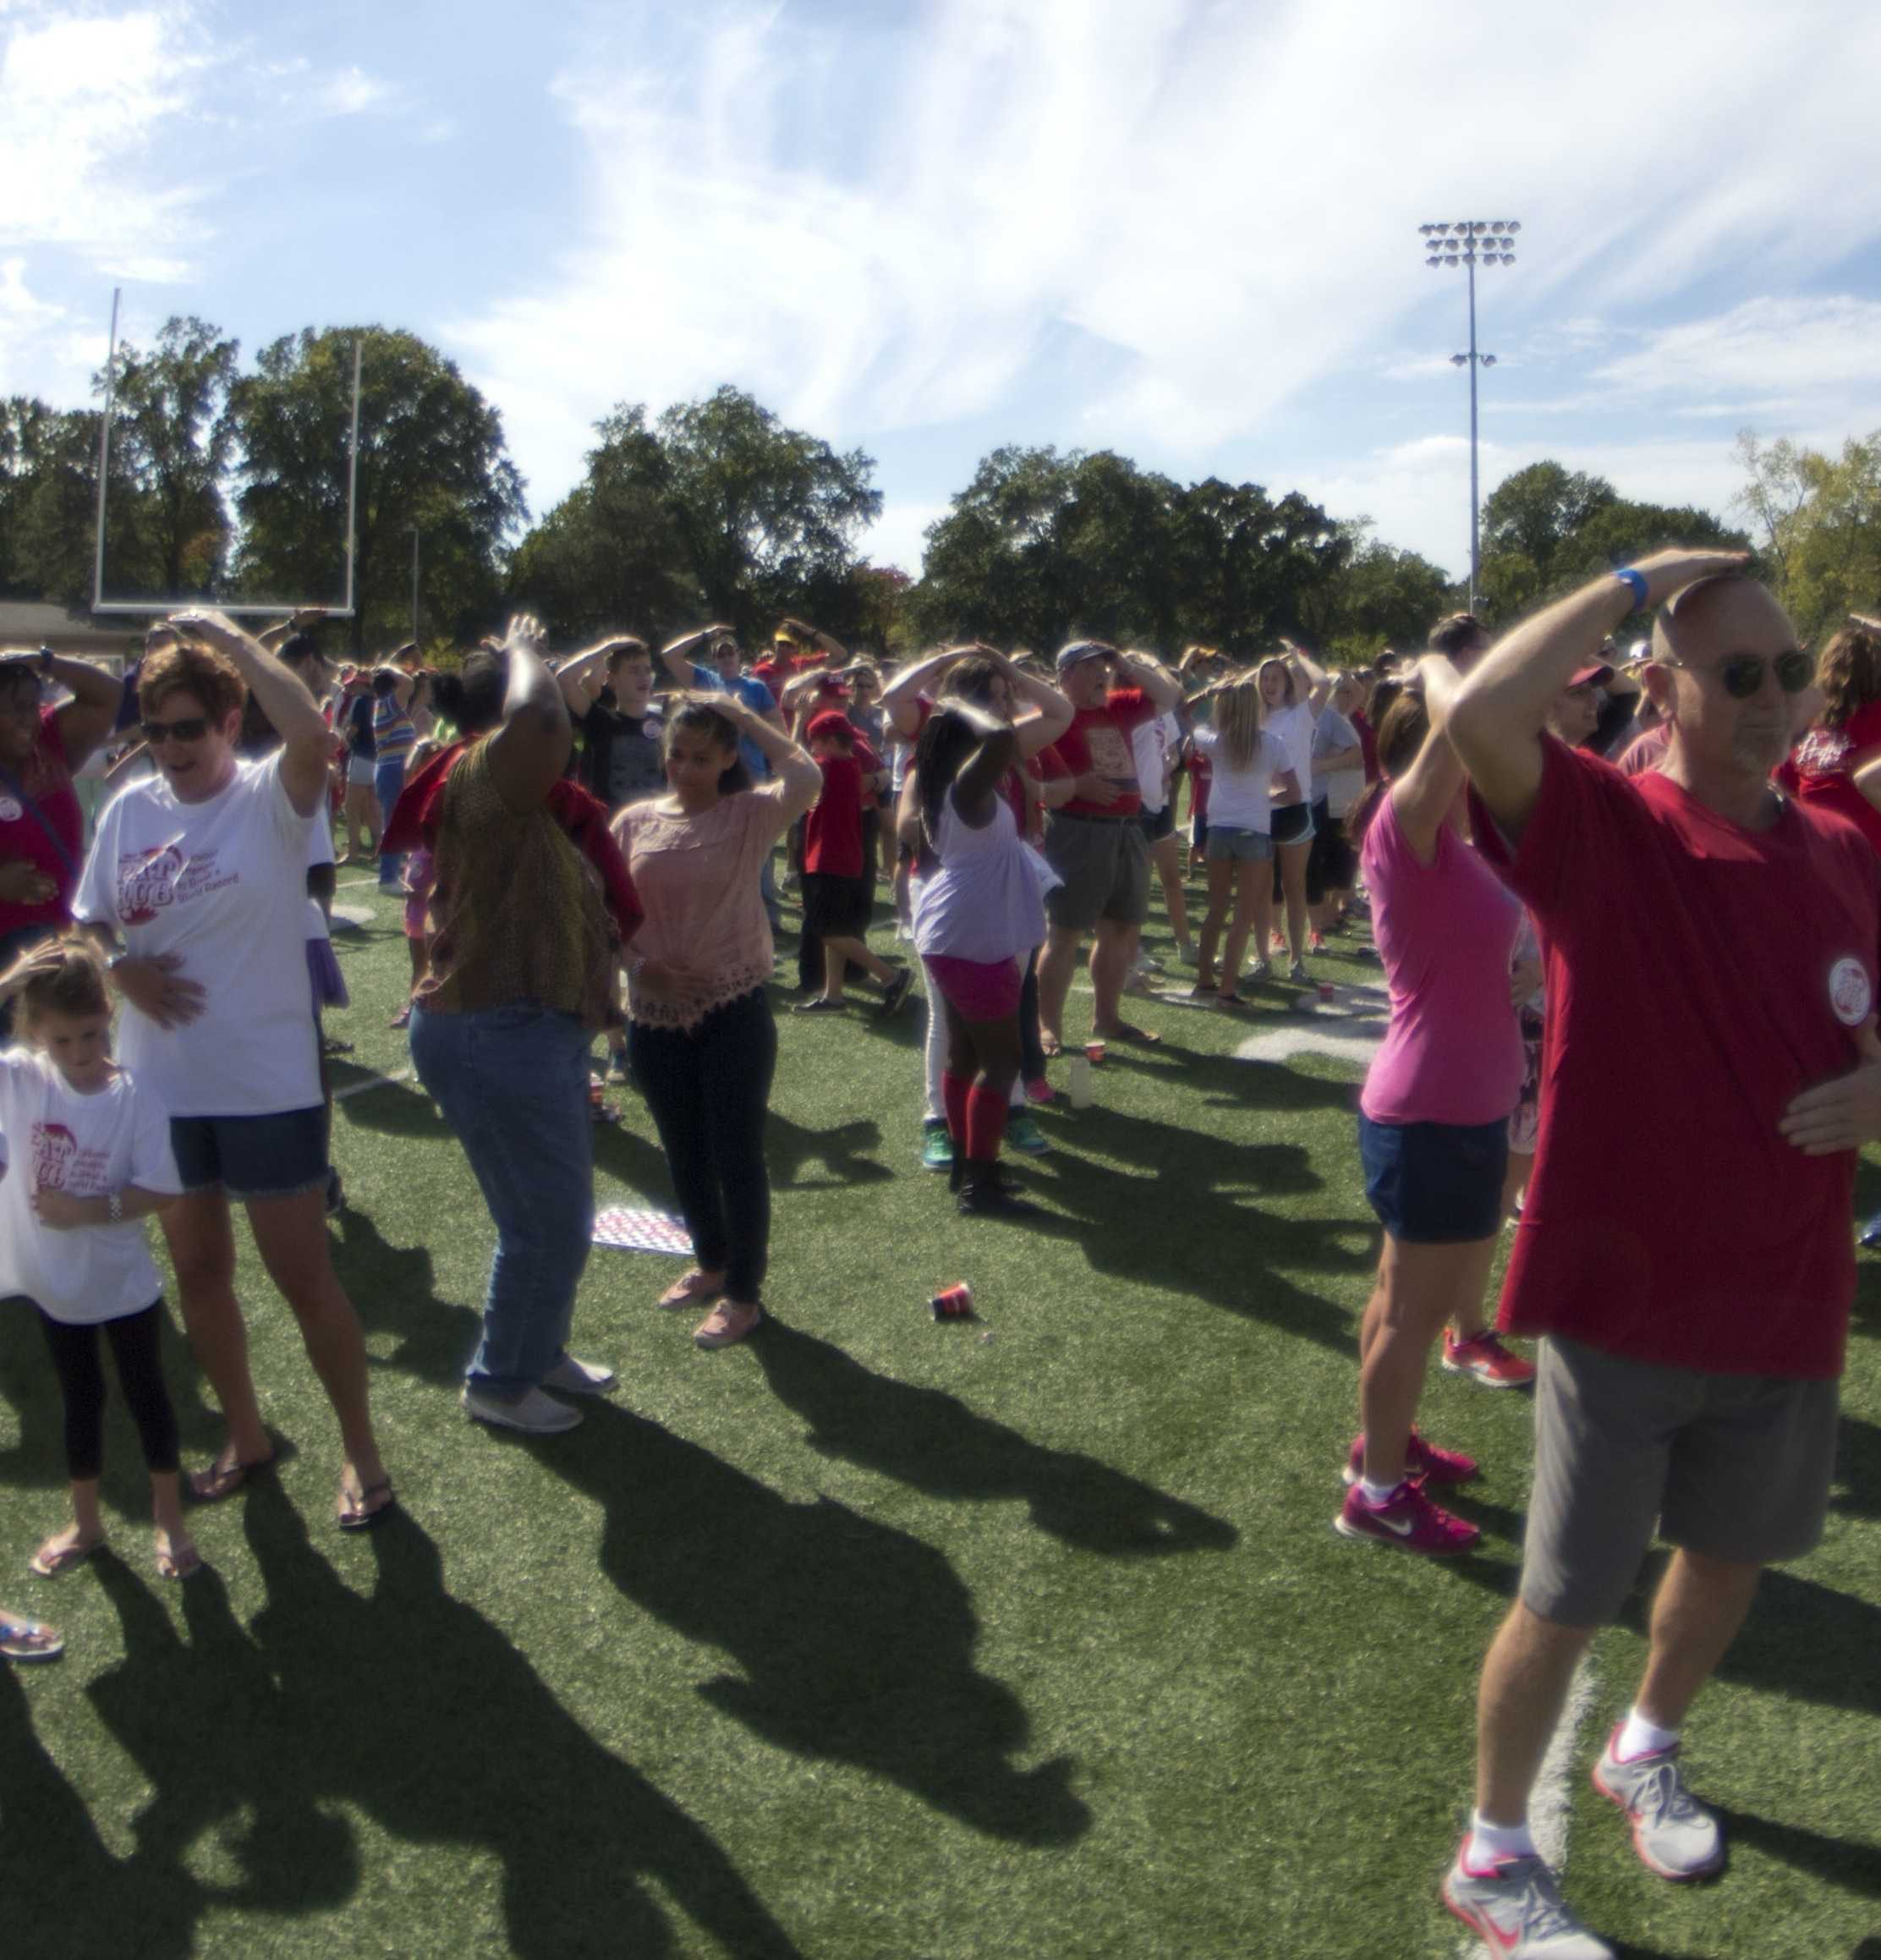 On Sept. 27, over 1,132 people came to KHS and participated in the Great Pat Rub.